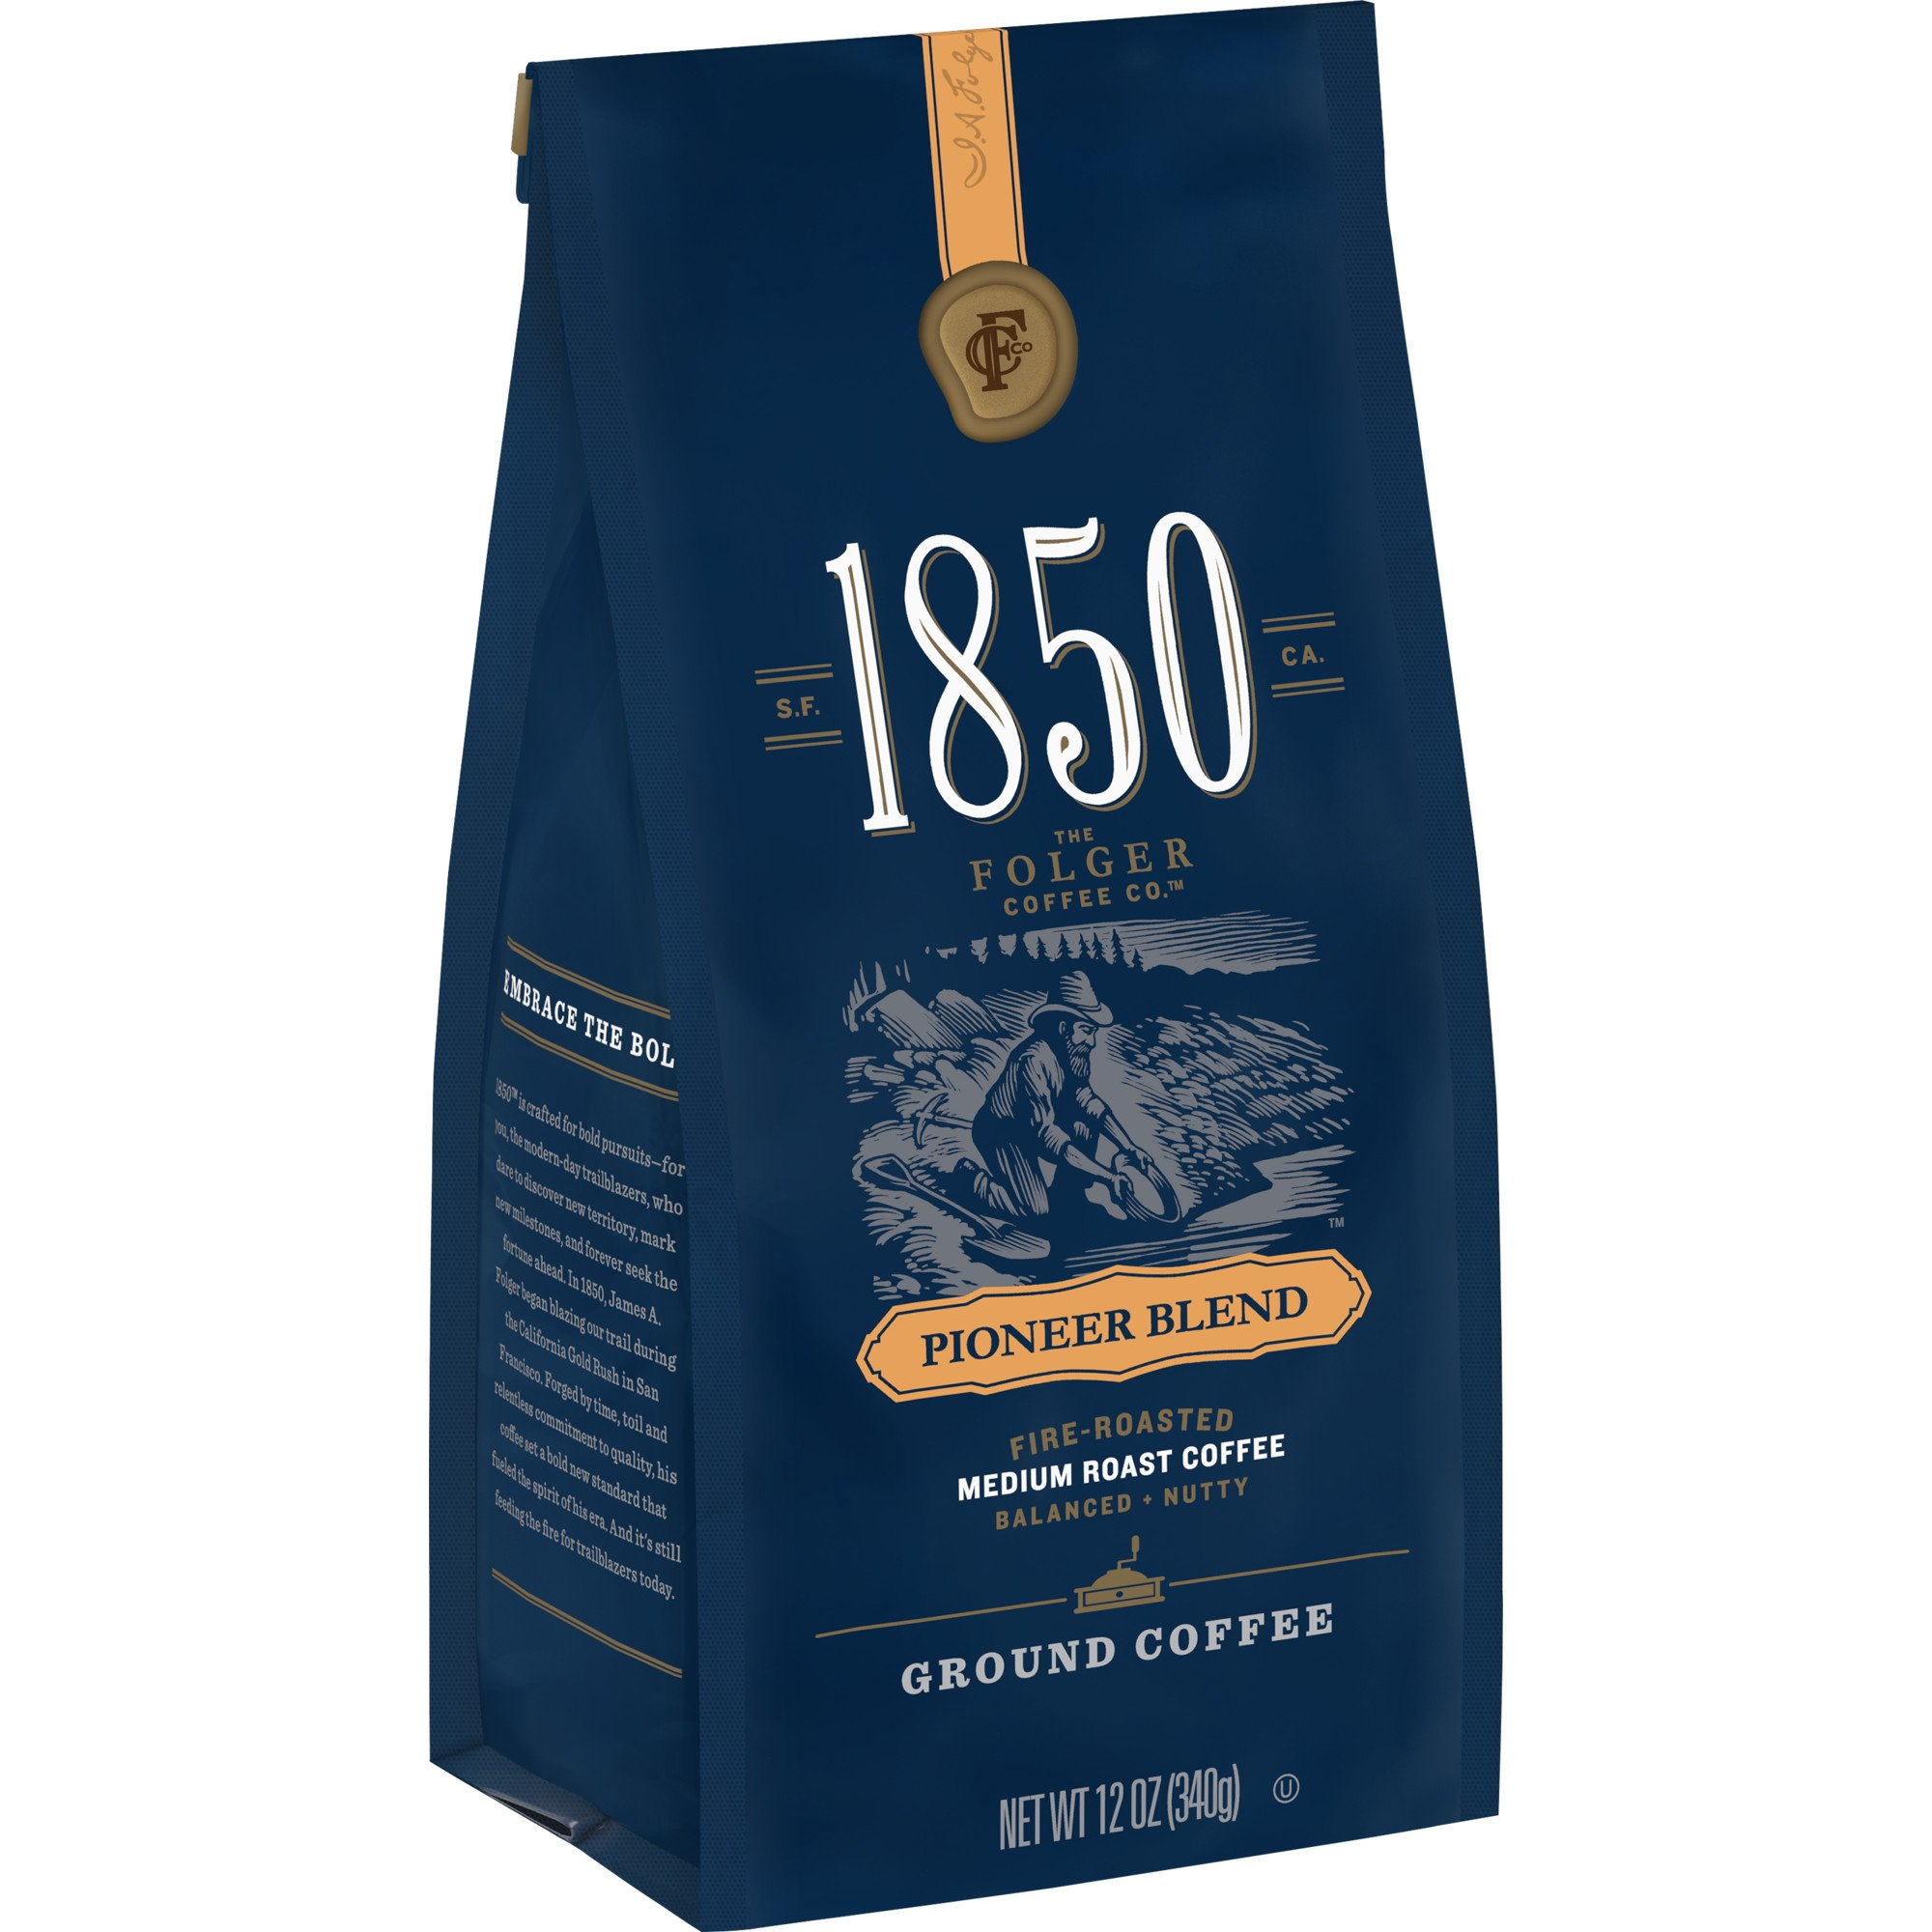 1850 Pioneer Blend, Medium Roast Ground Coffee, 12 Ounces (Pack of 6) by 1850